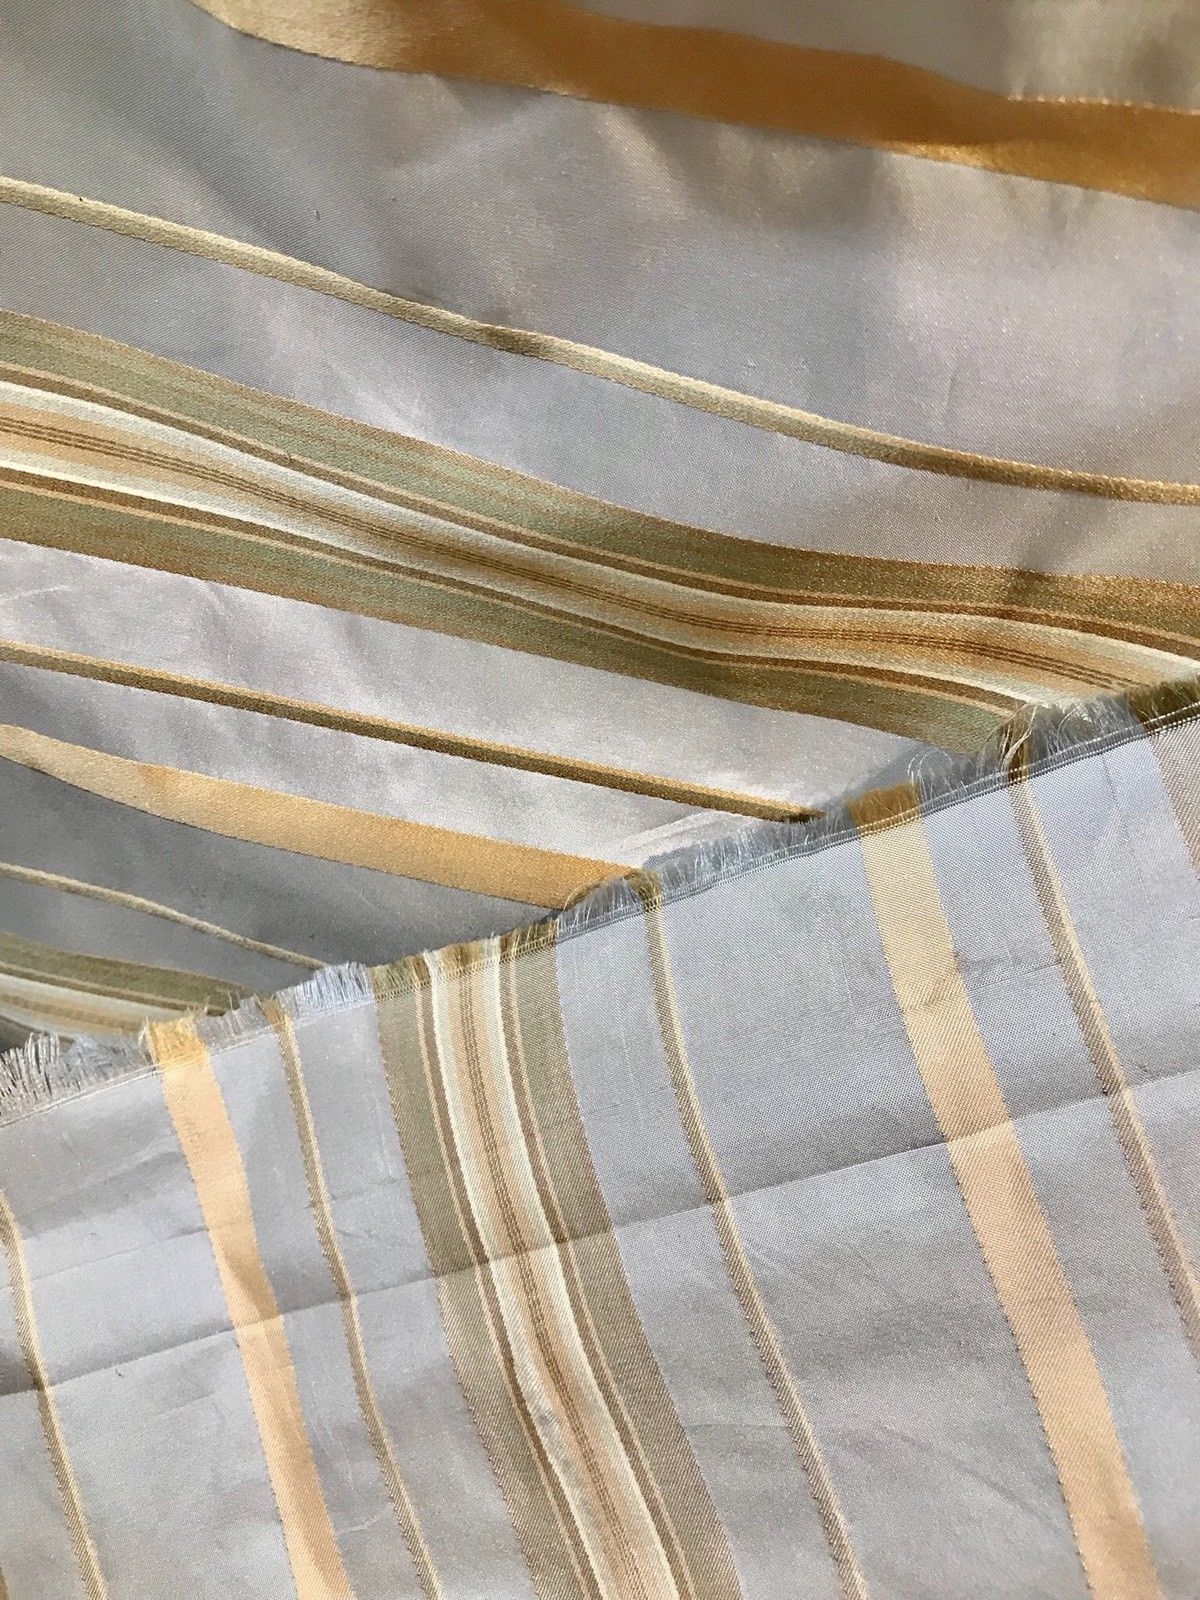 SWATCH 100% Silk Taffeta Drapery Fabric - Stripe Blue And Gold - Fancy Styles Fabric Boutique